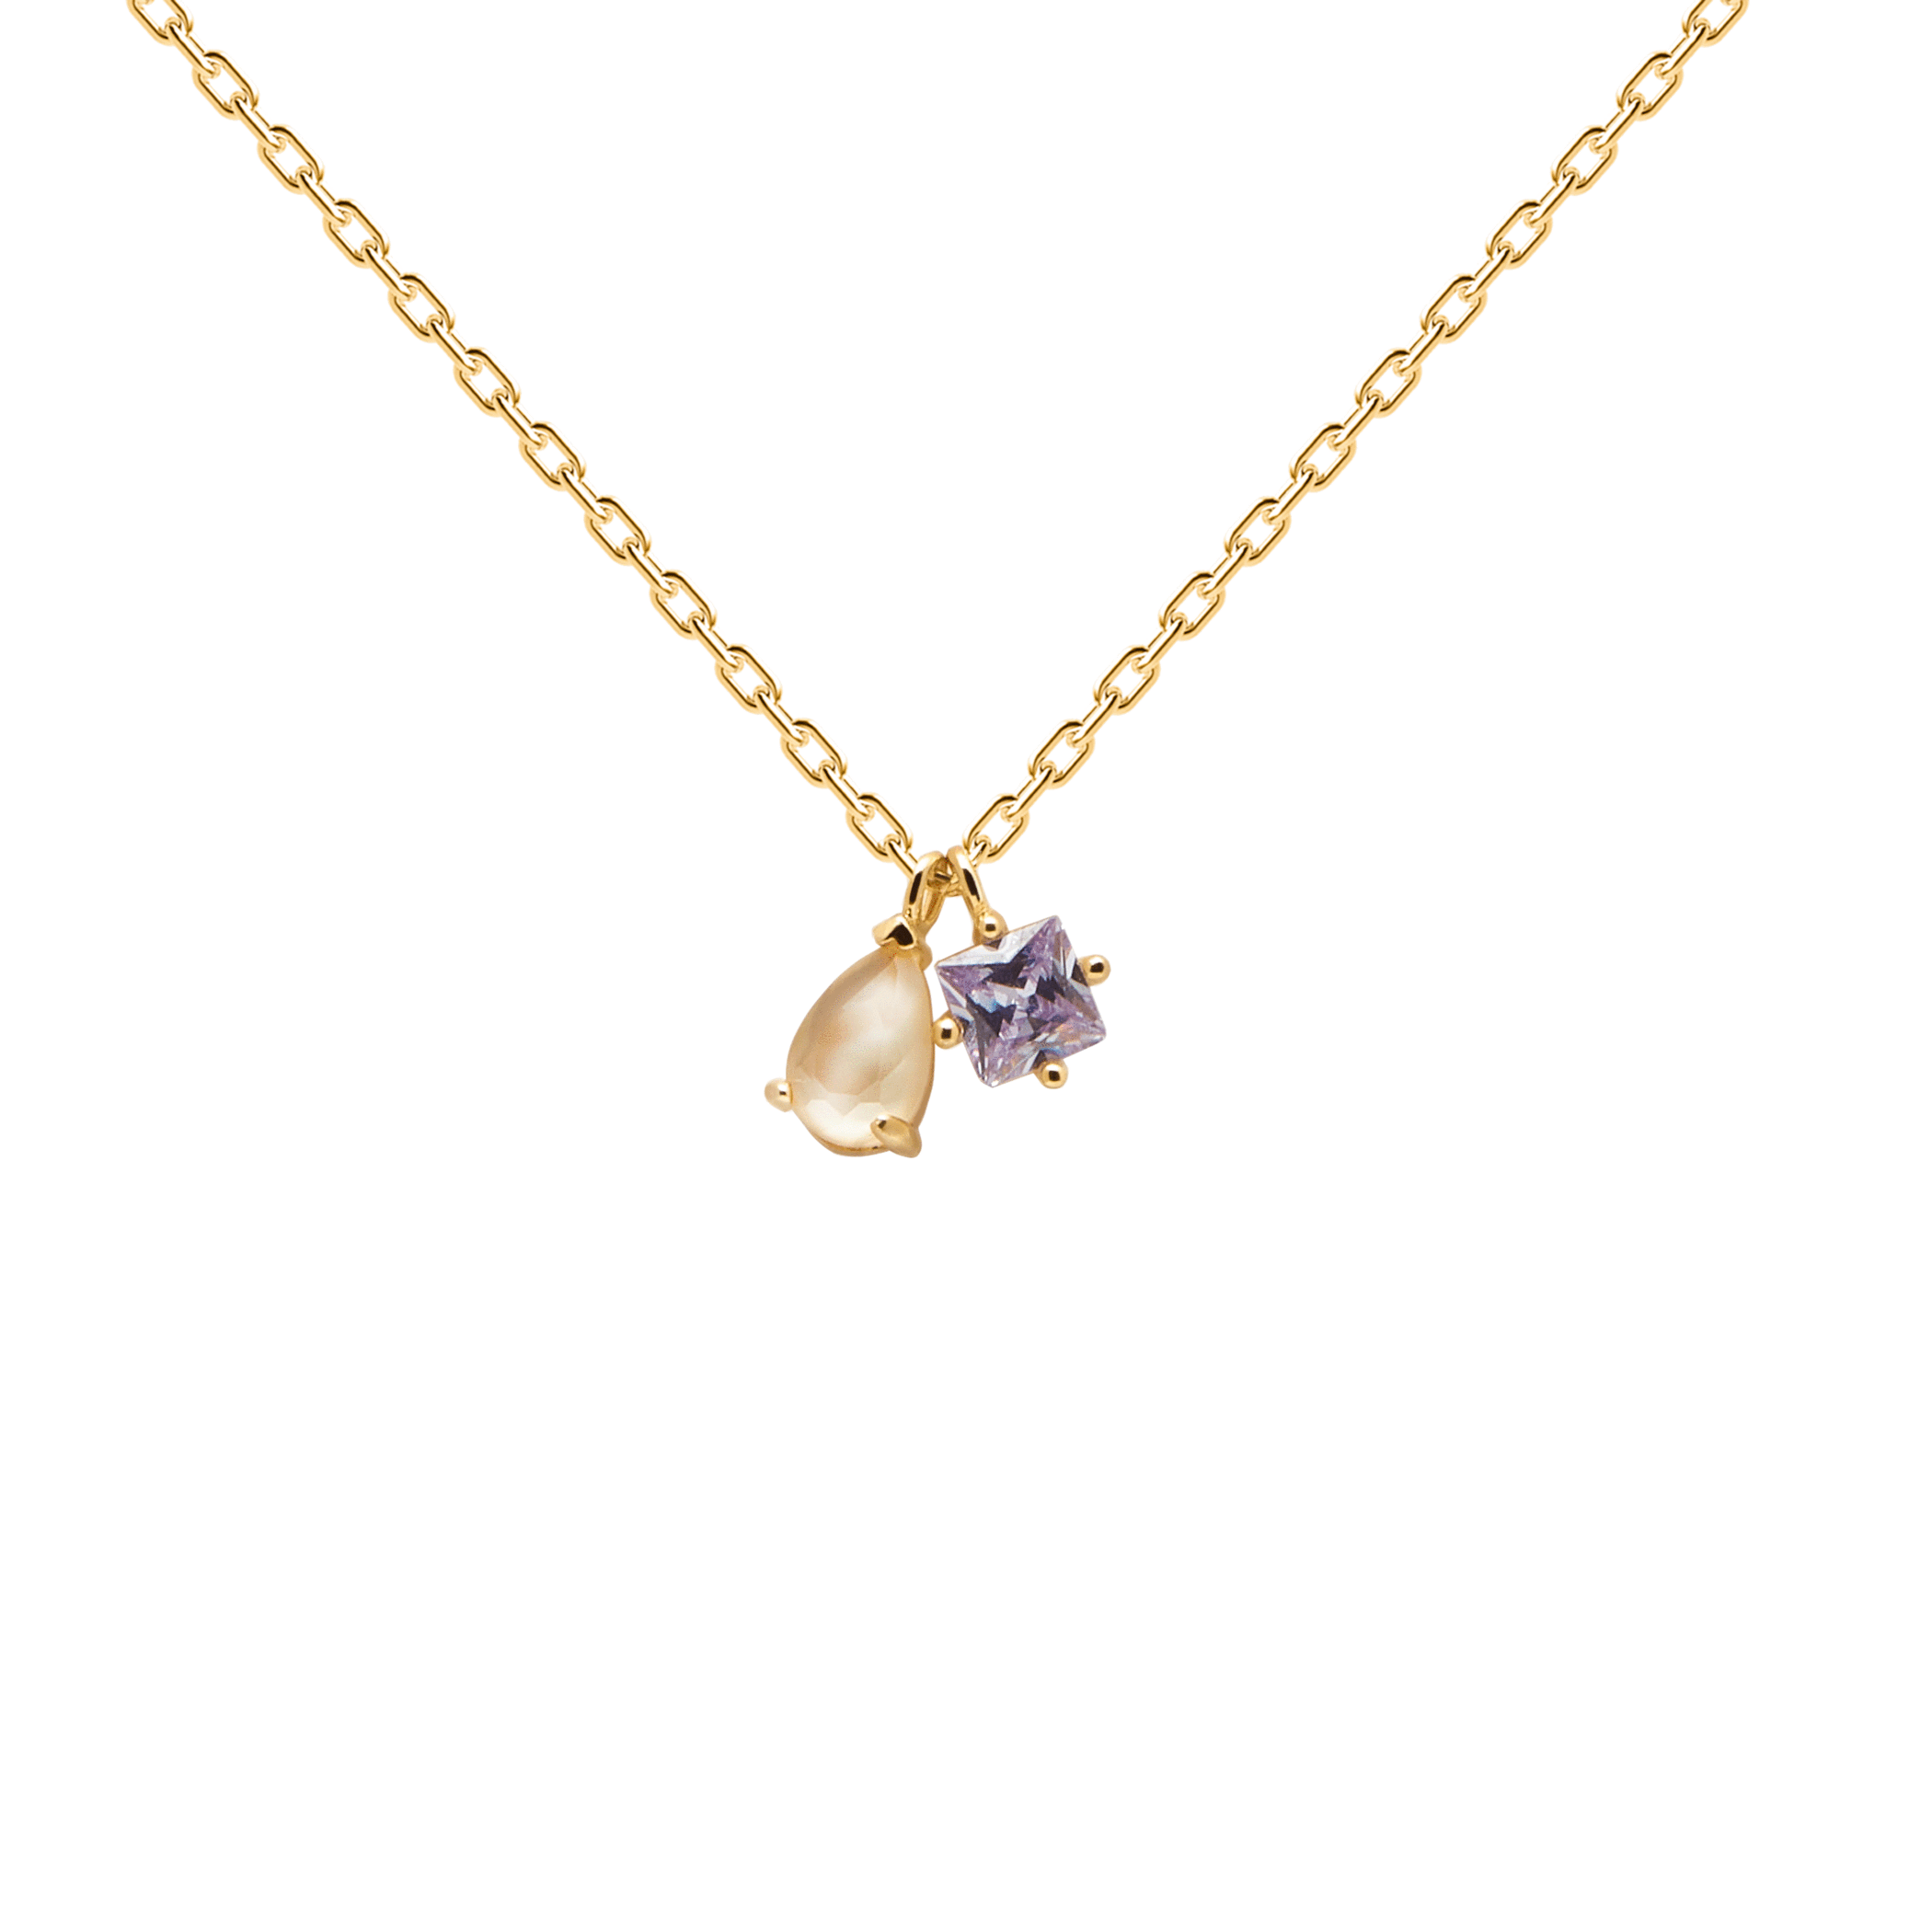 PDPAOLA - velours necklace CO01-182-U cavalier collection